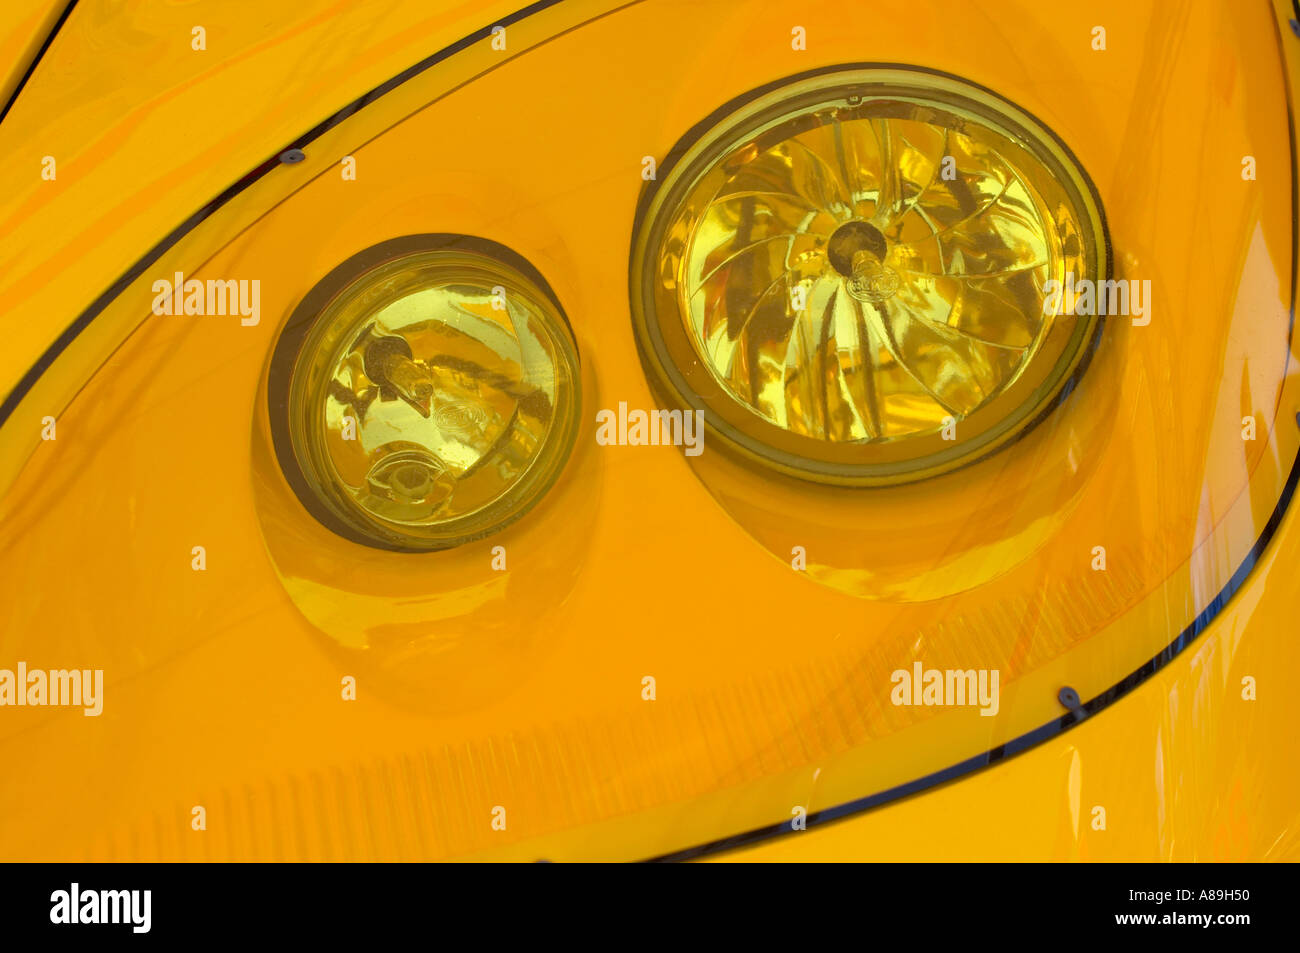 Yellow Headlights On Chevrolet Corvette Race Car Stock Photo